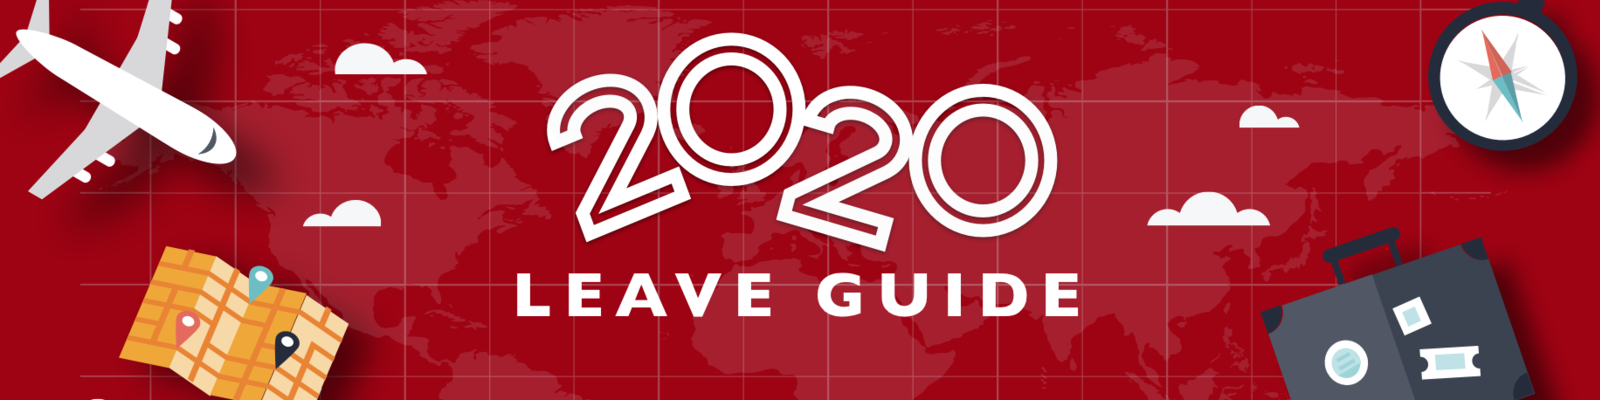 2020-leave-guide-infographic